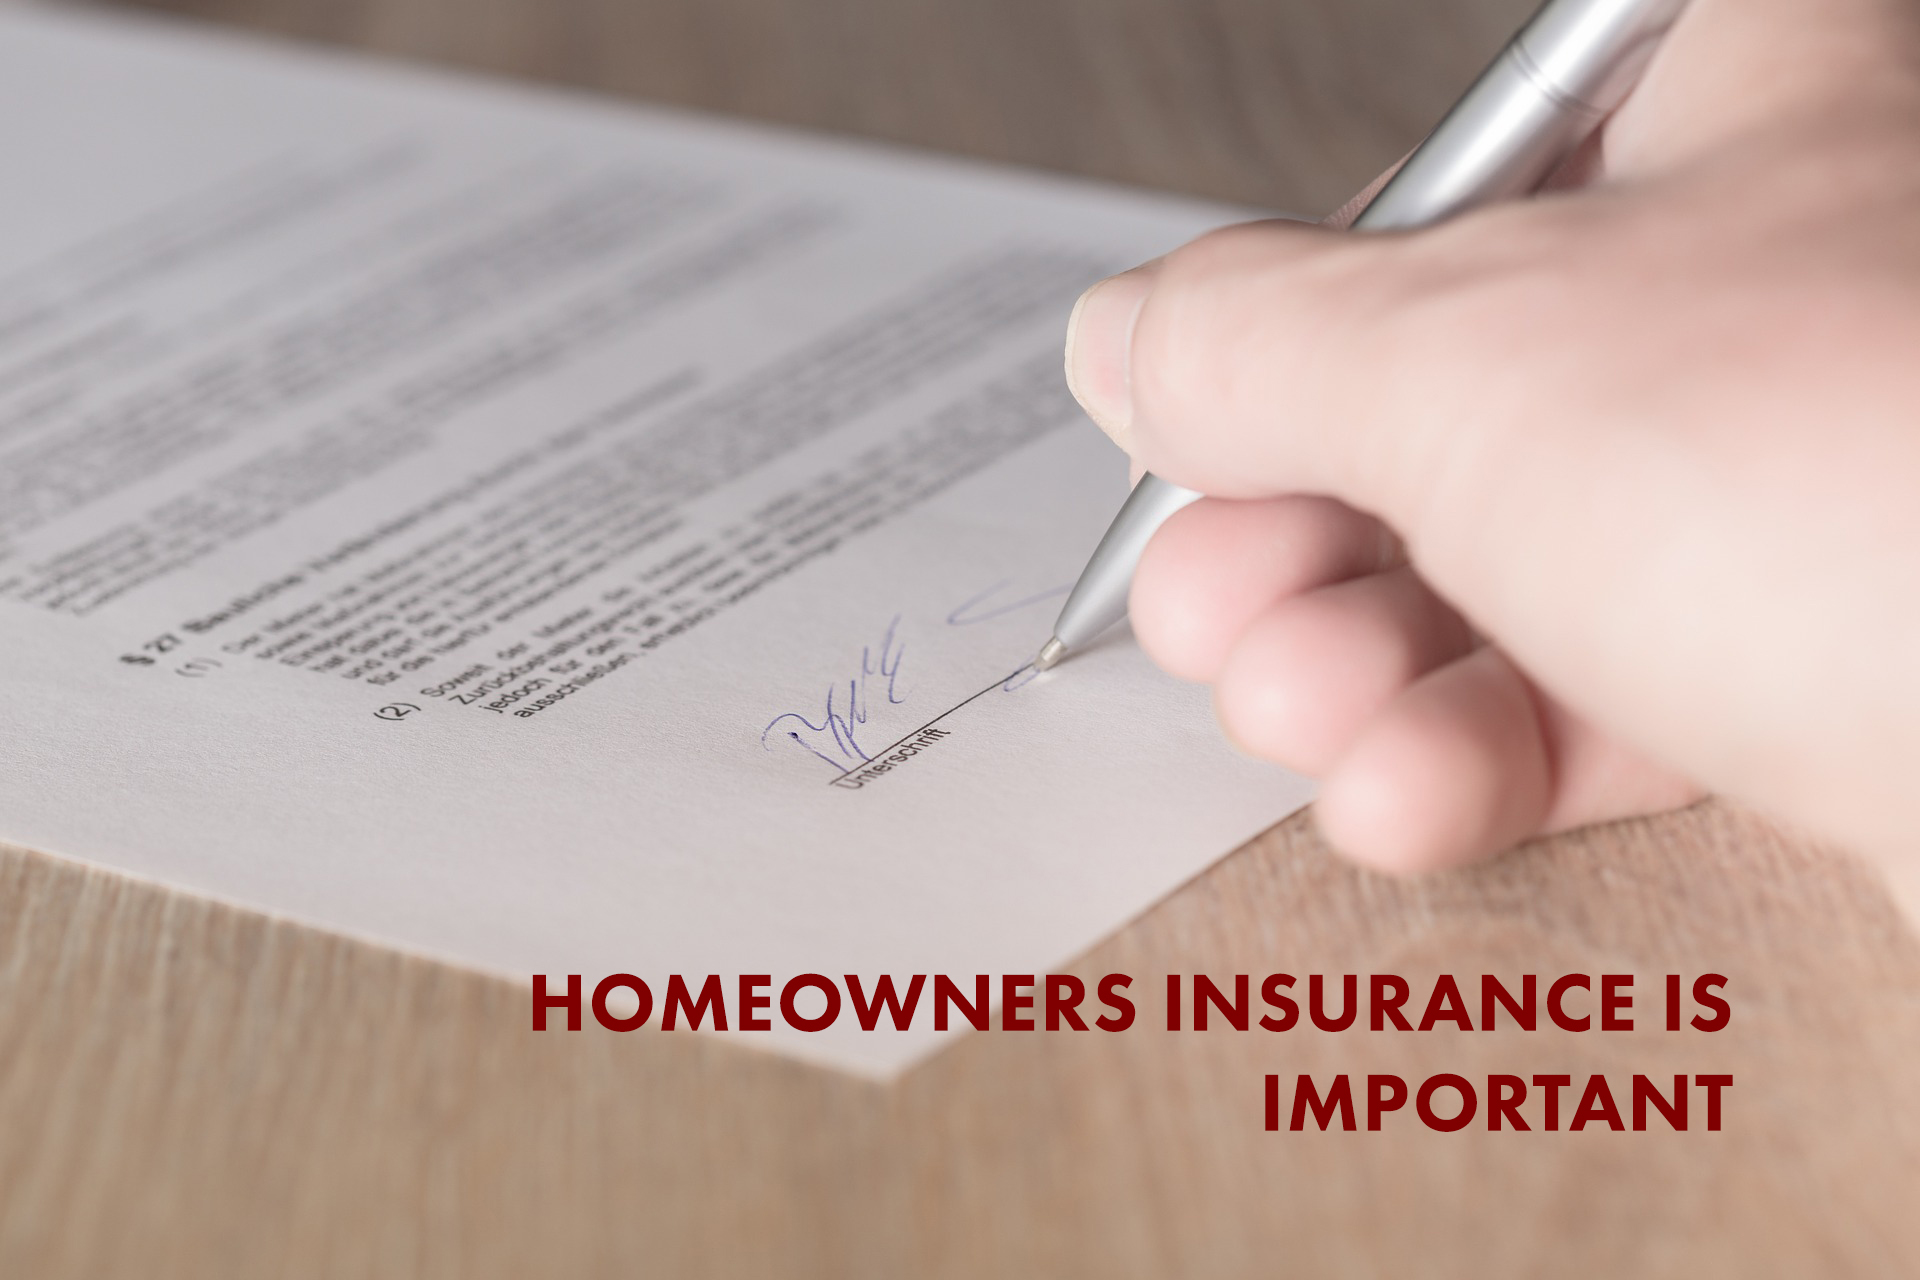 Homeowners insurance is important